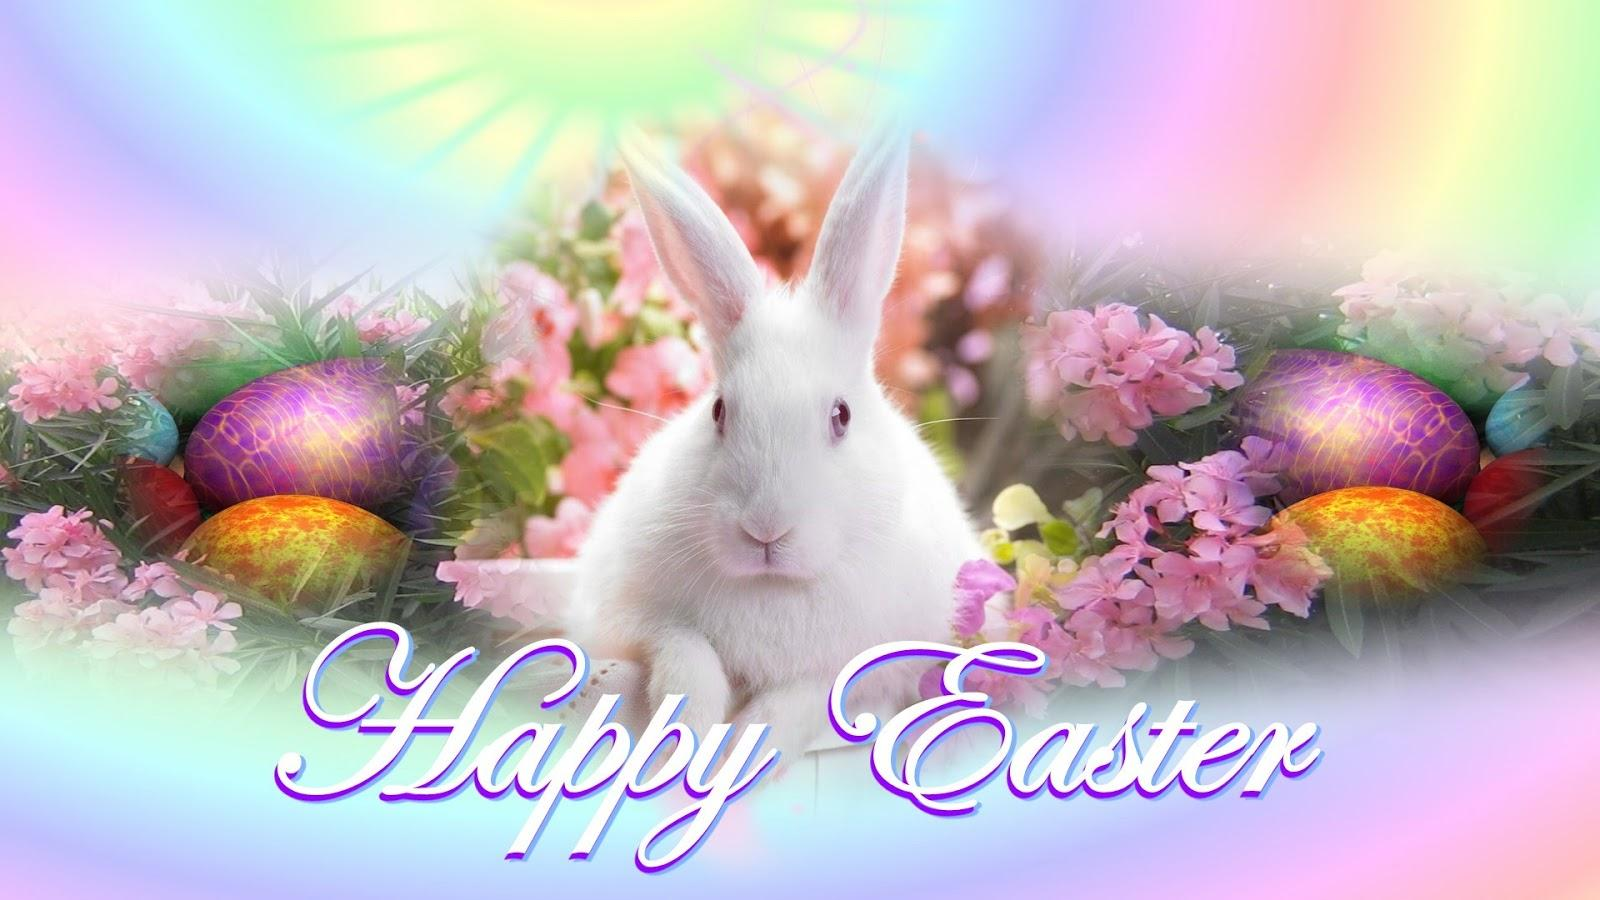 Happy Easter 2020 Wallpapers 1600x900